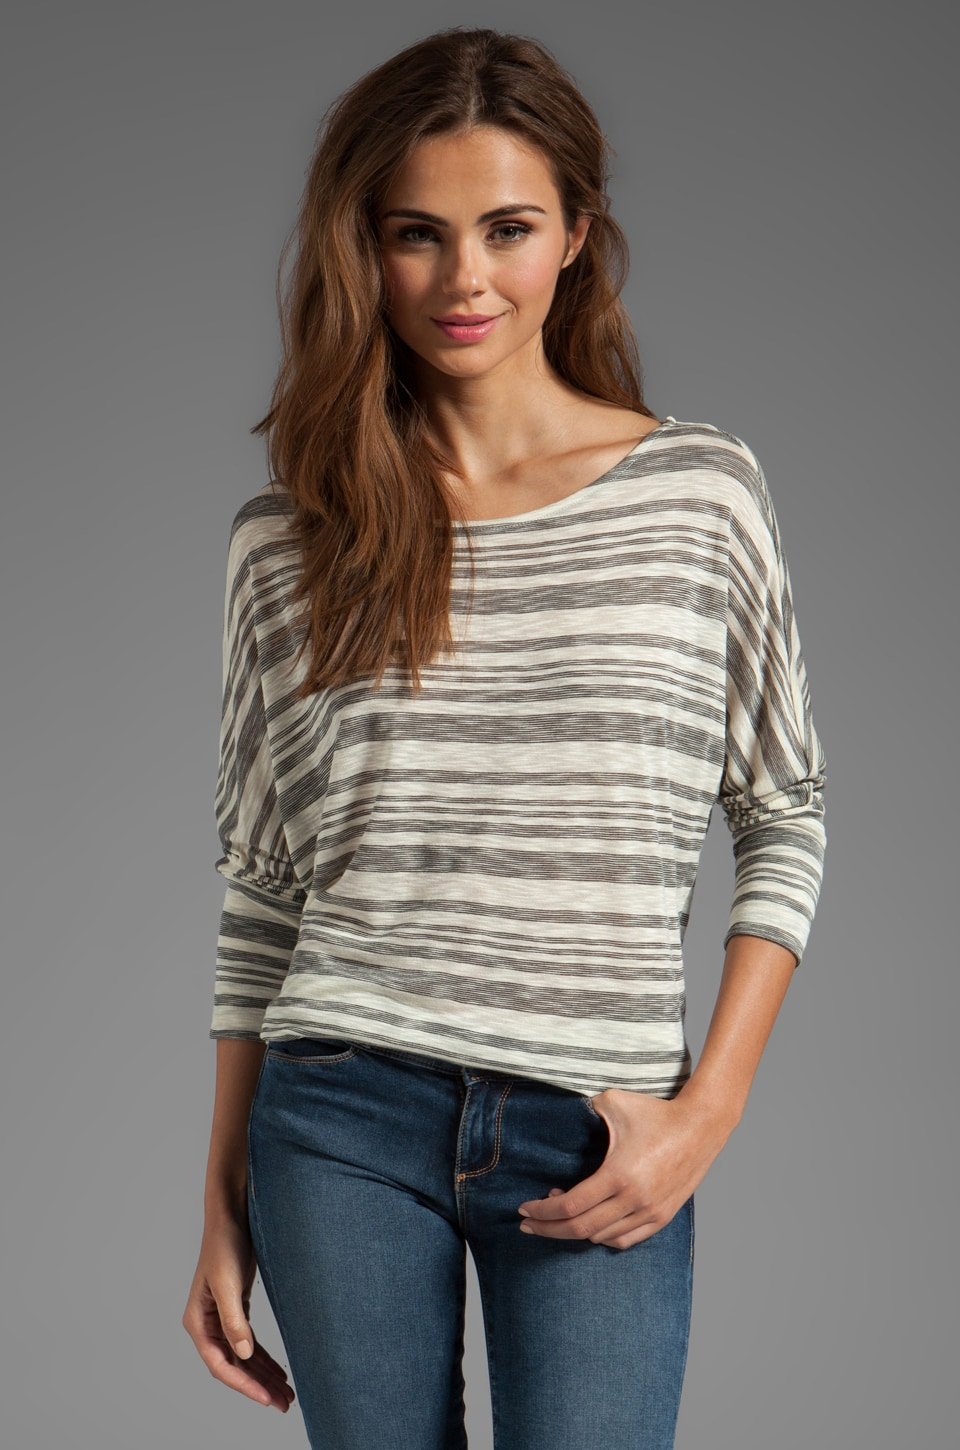 Soft Joie Sagittarius Stripe Top in Caviar/Vanilla